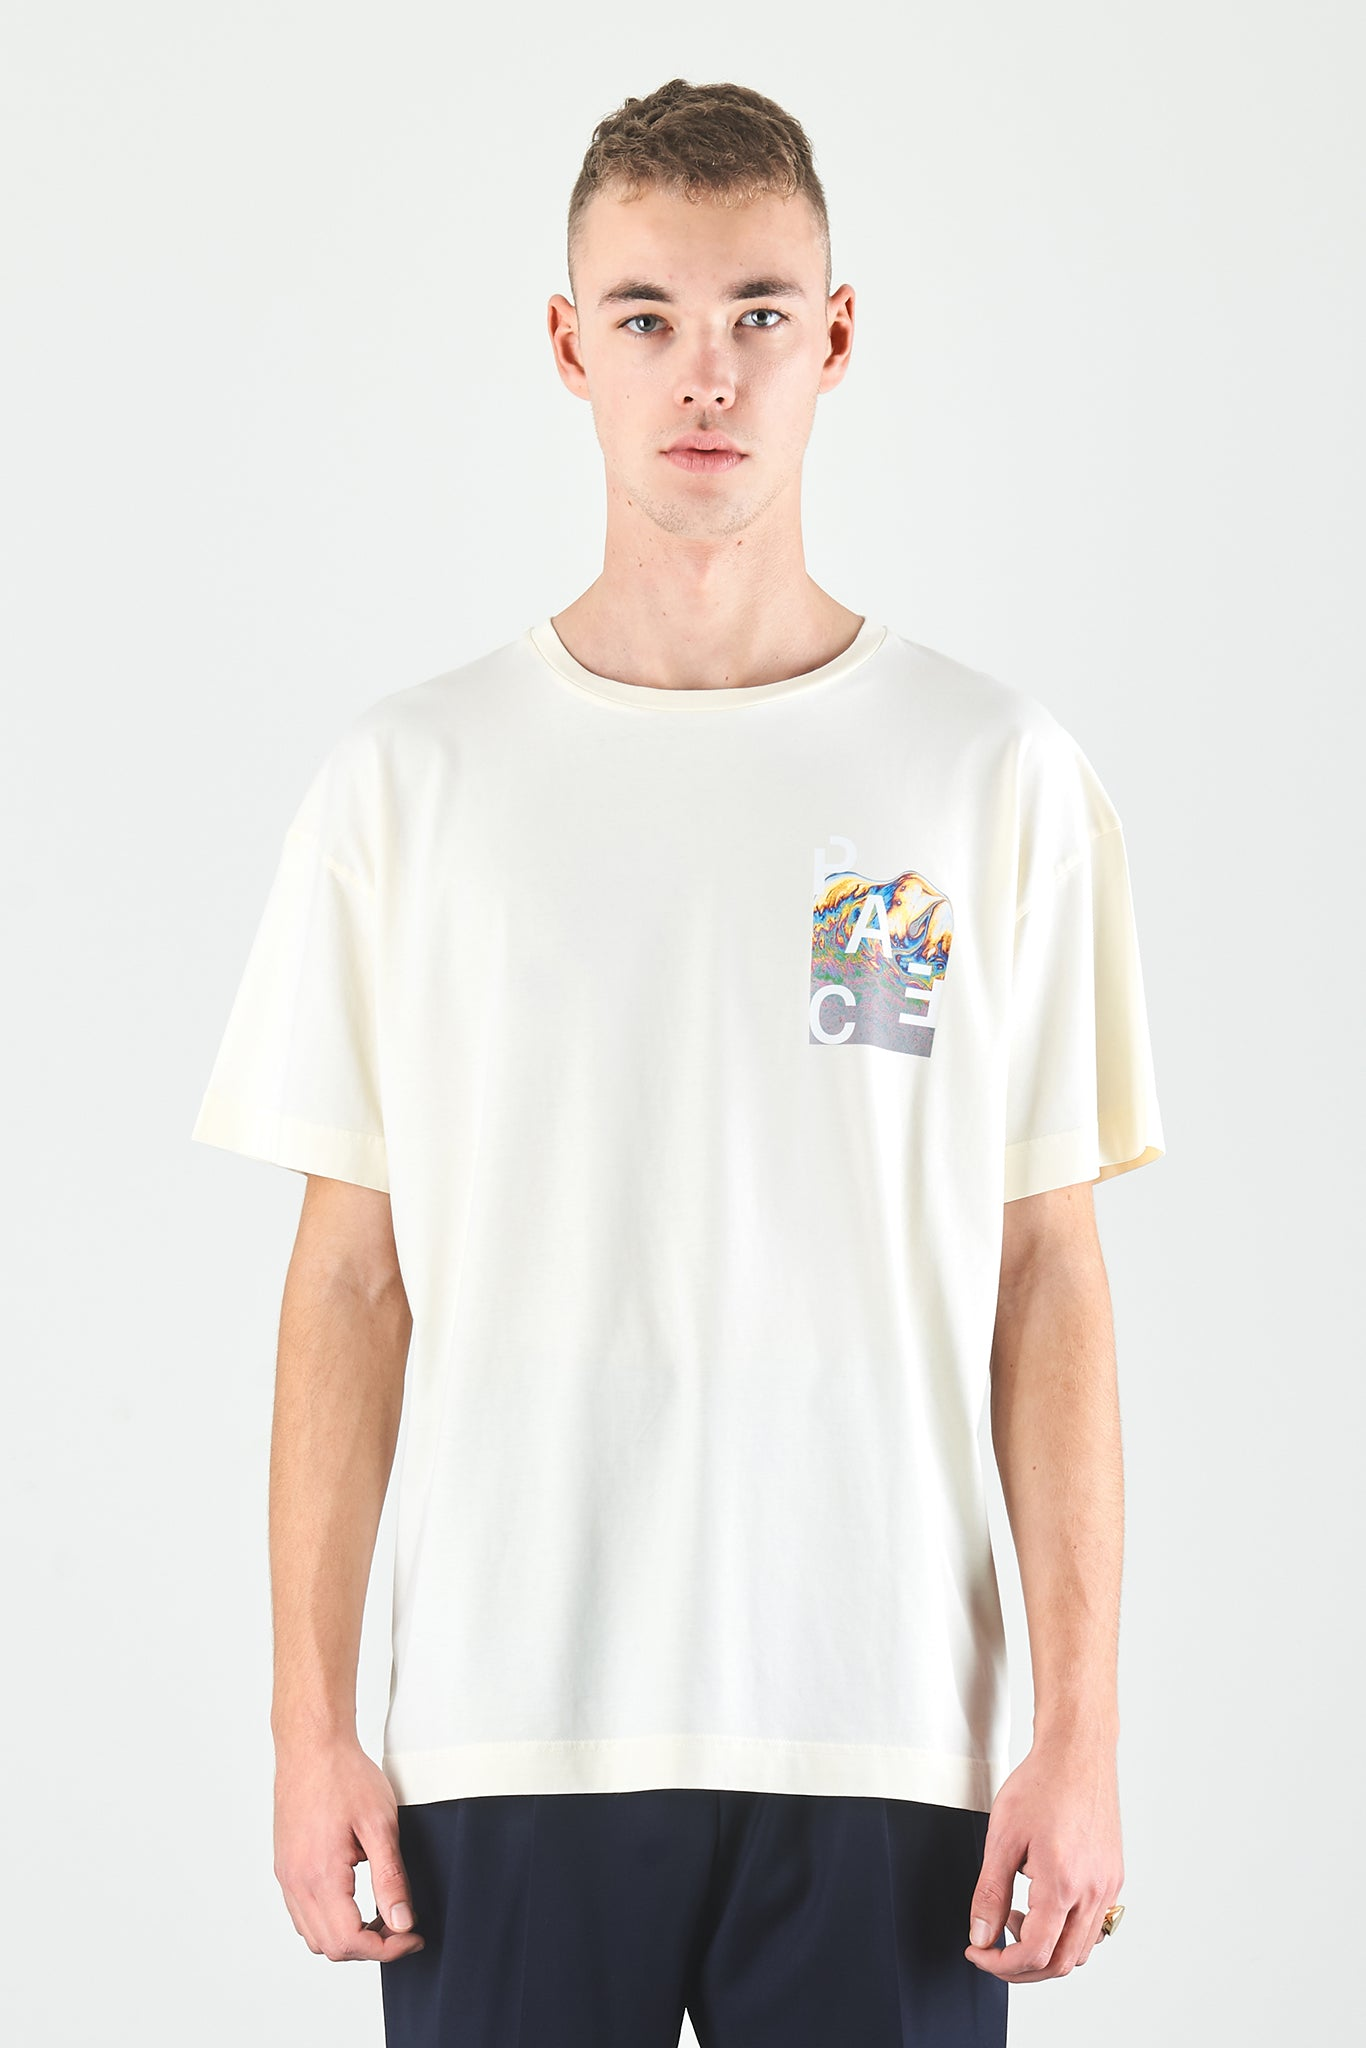 MRBSH2 T-SHIRT OFF WHITE